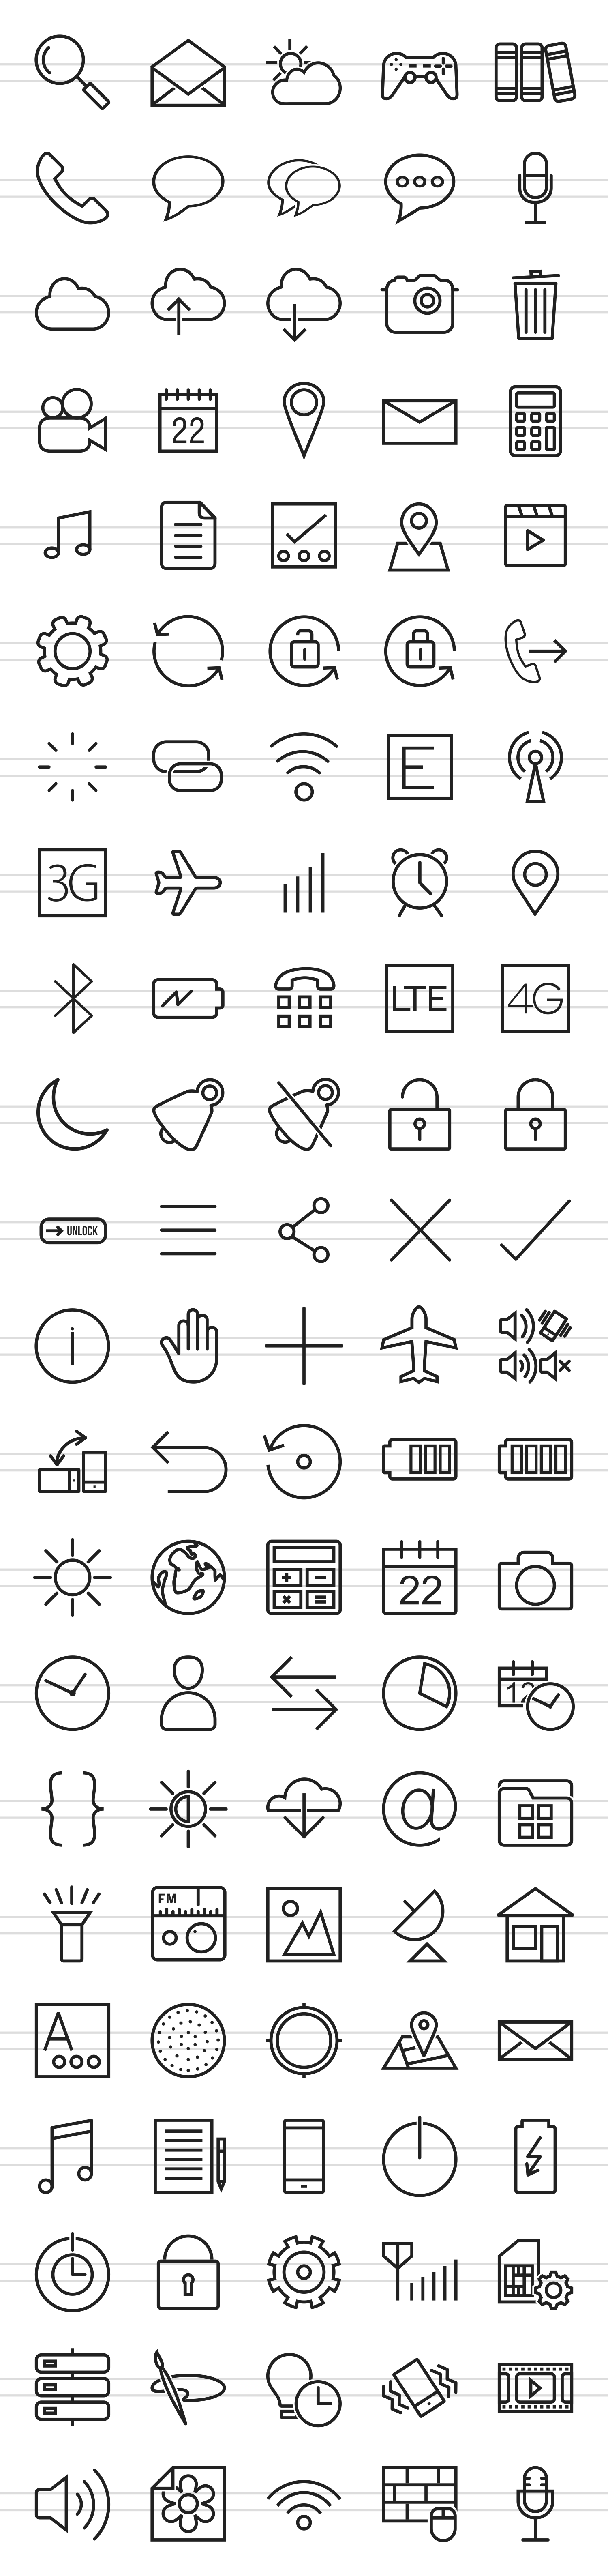 110 Mobile Interface Line Icons example image 2